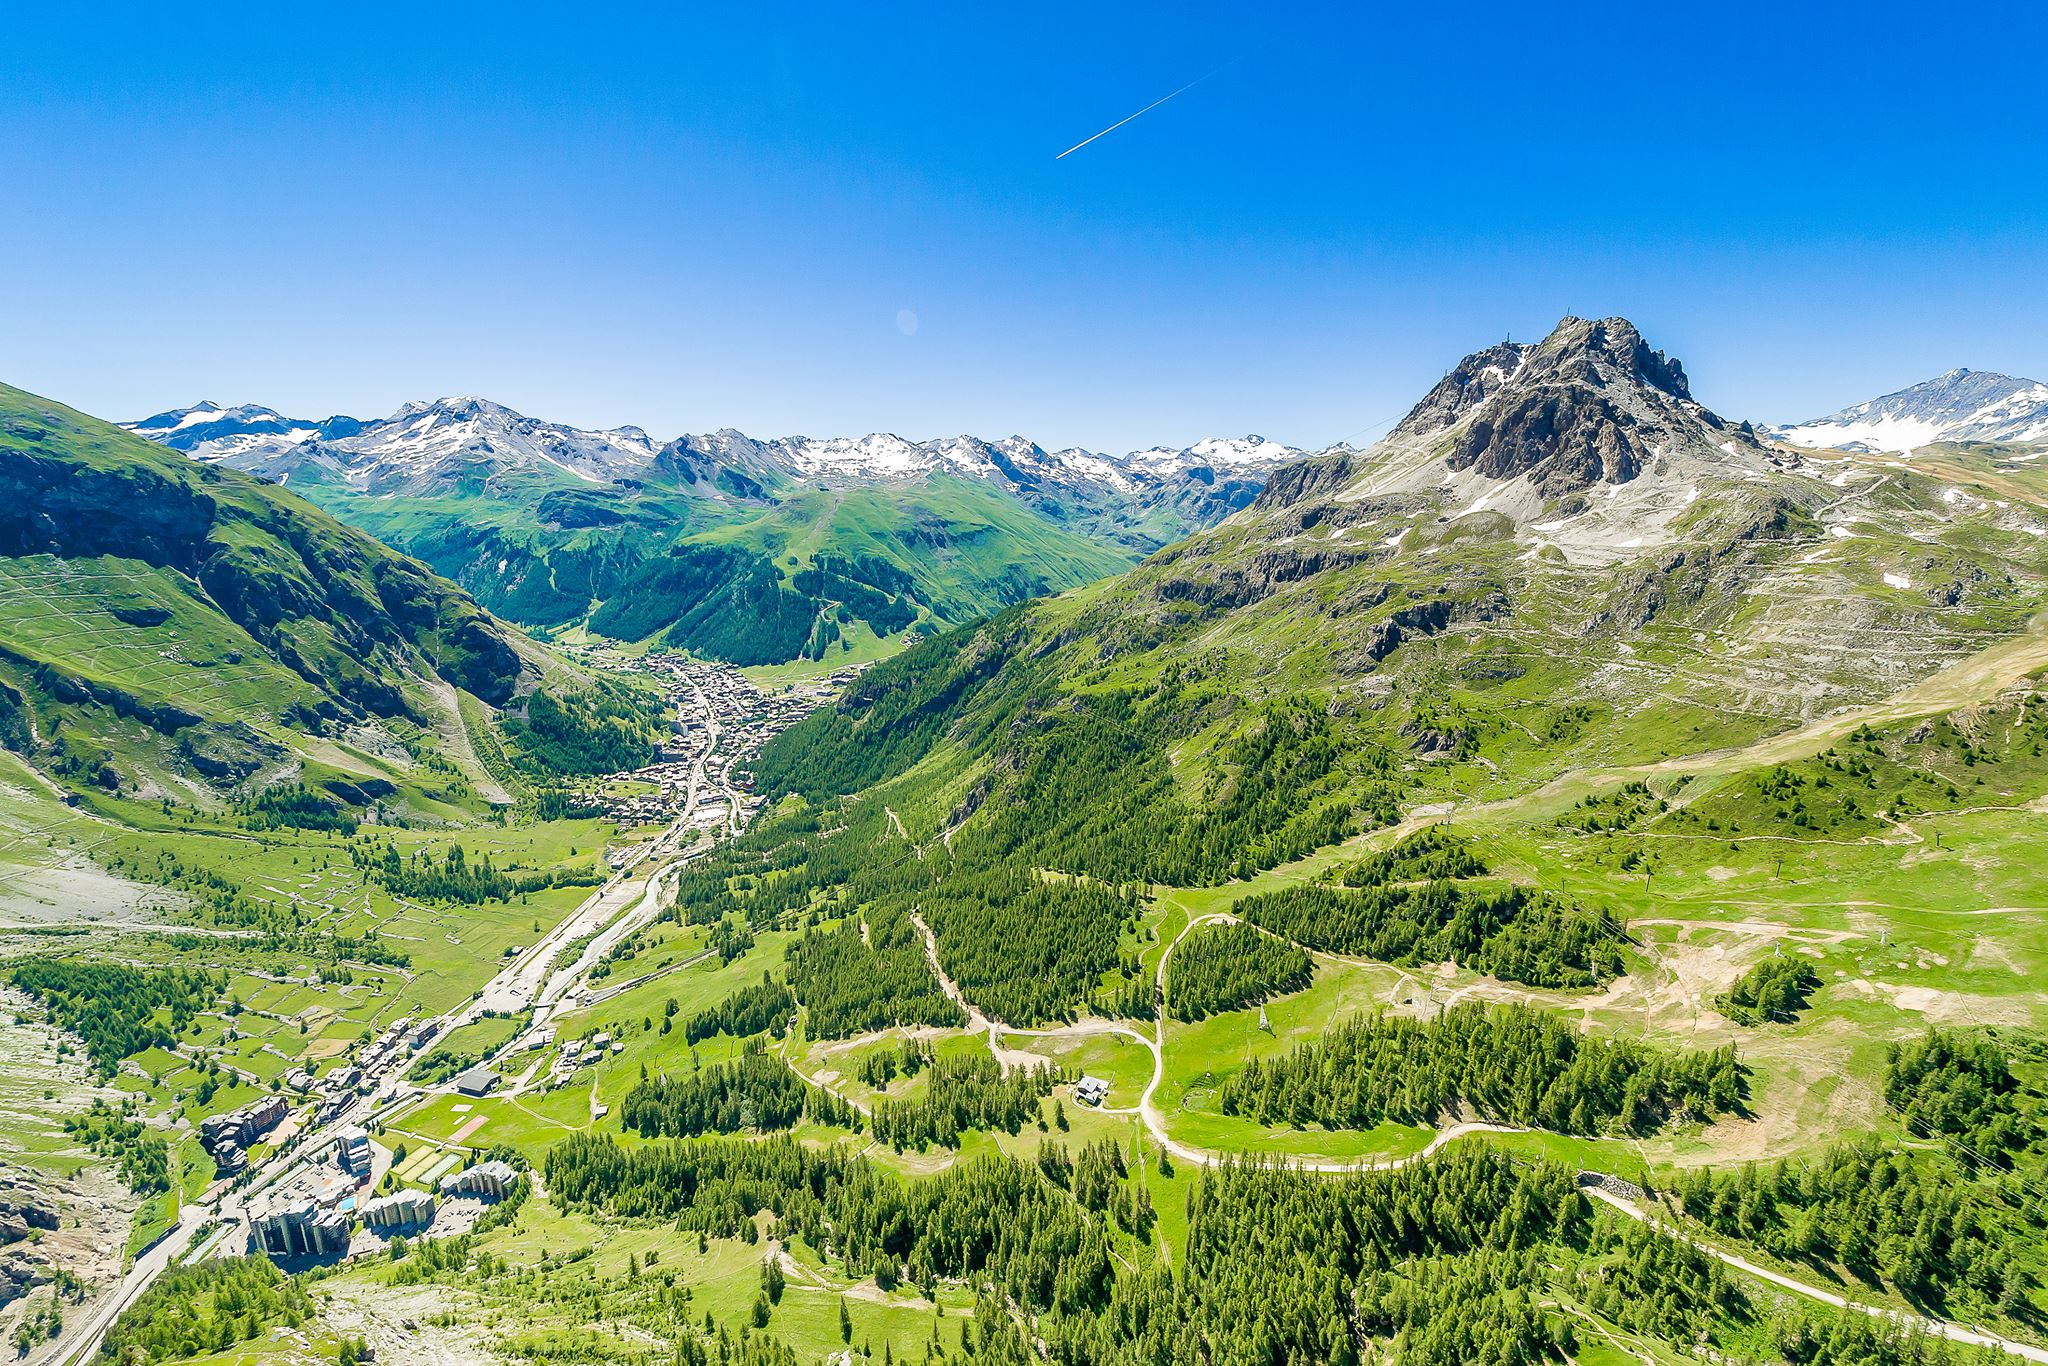 Val d'Isere is a favorite local getaway destination in France.